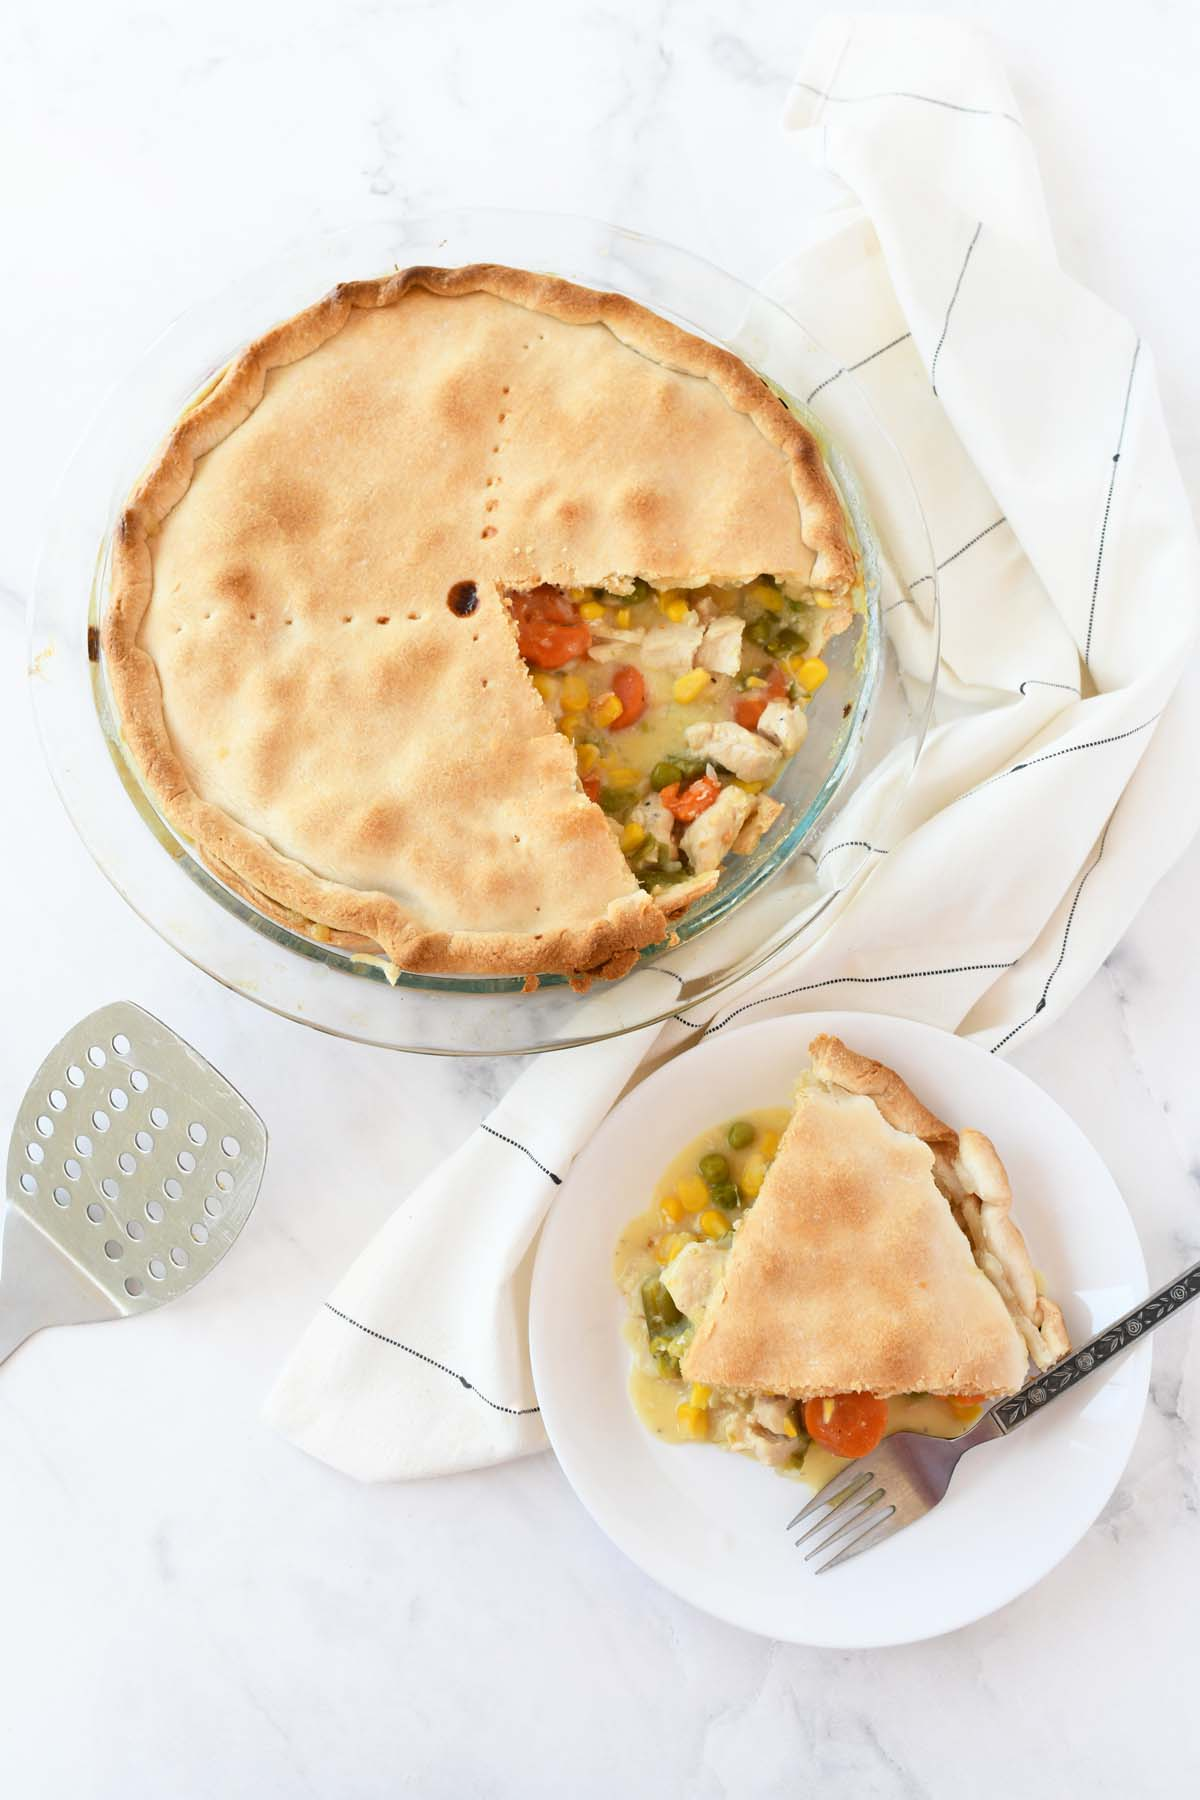 A delicious pie slice on a white dish with a fork.